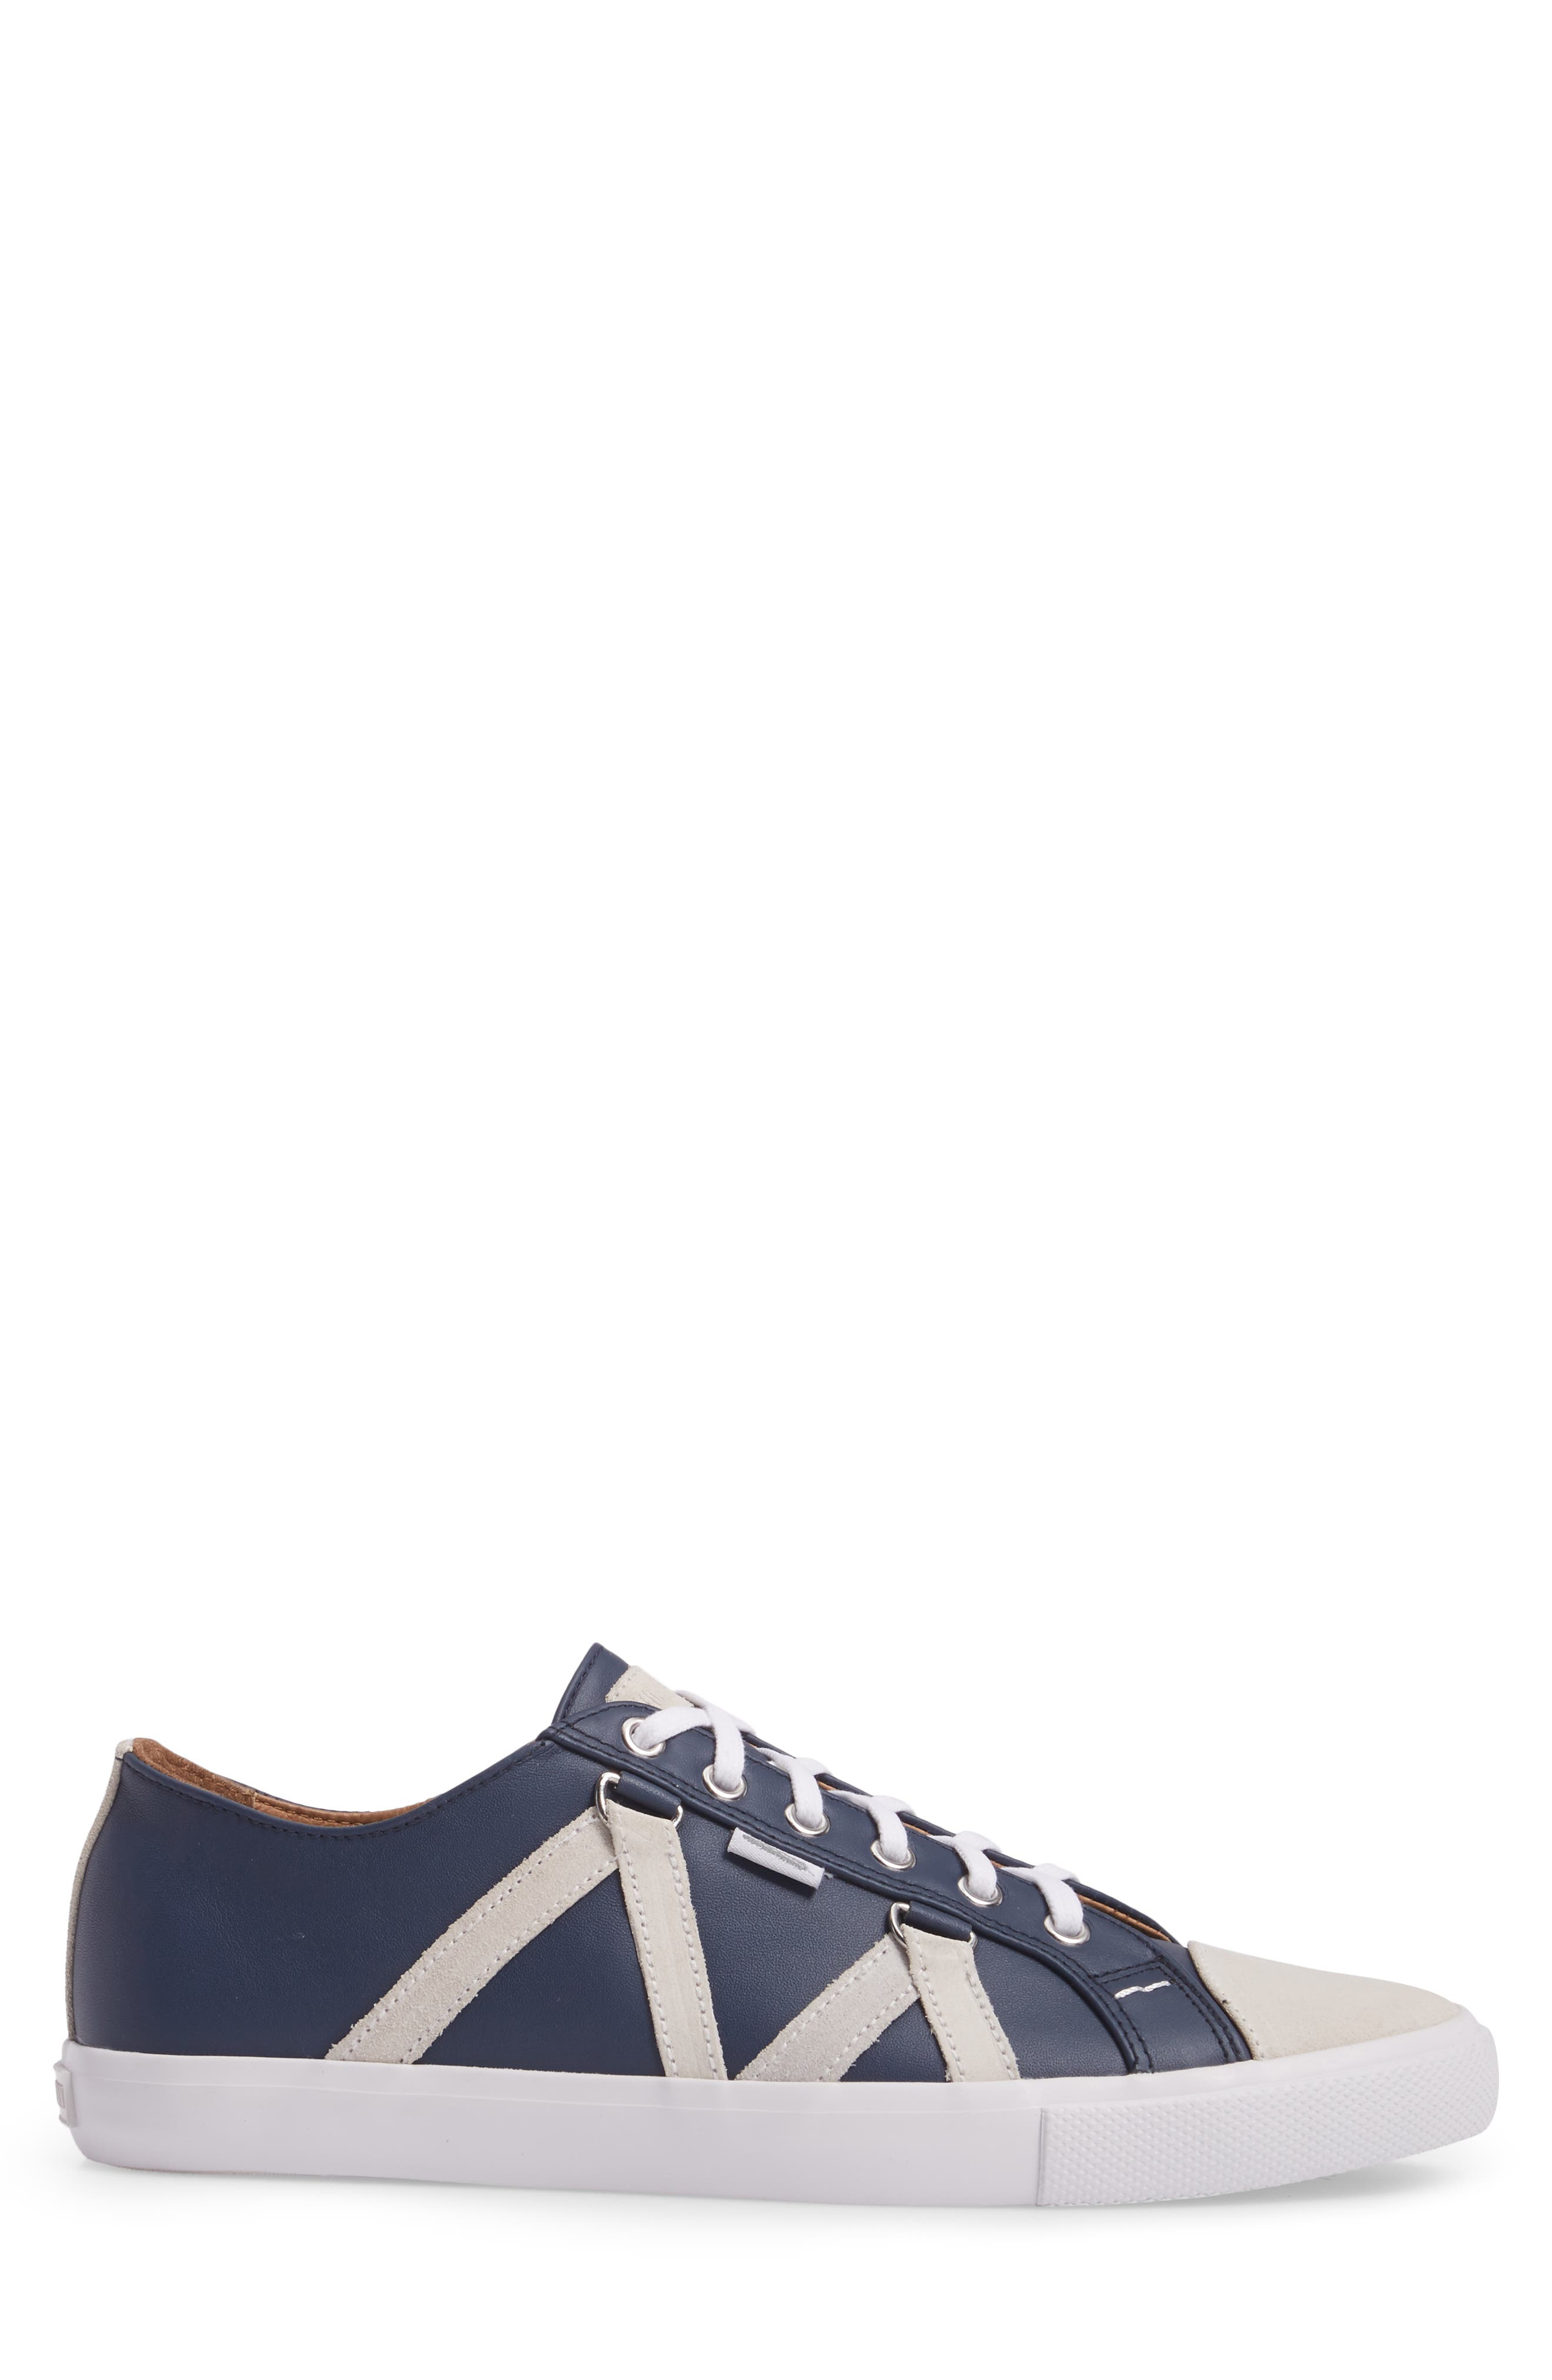 Signature Sneaker,                             Alternate thumbnail 3, color,                             NAVY LEATHER